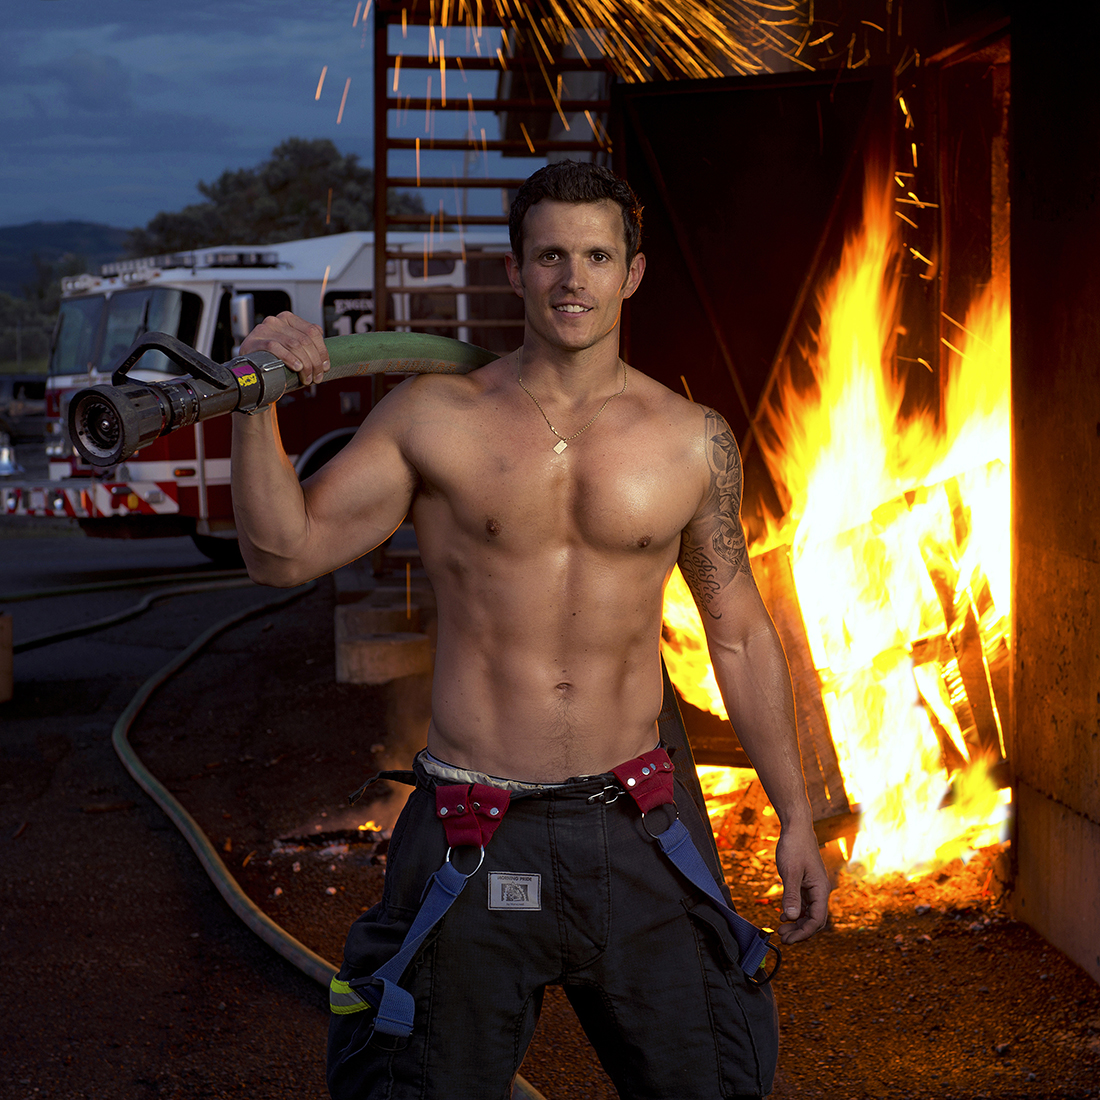 Fireman shot for the 2017 Kamloops Firefighter's Calendar, Kamloops, BC, Canada